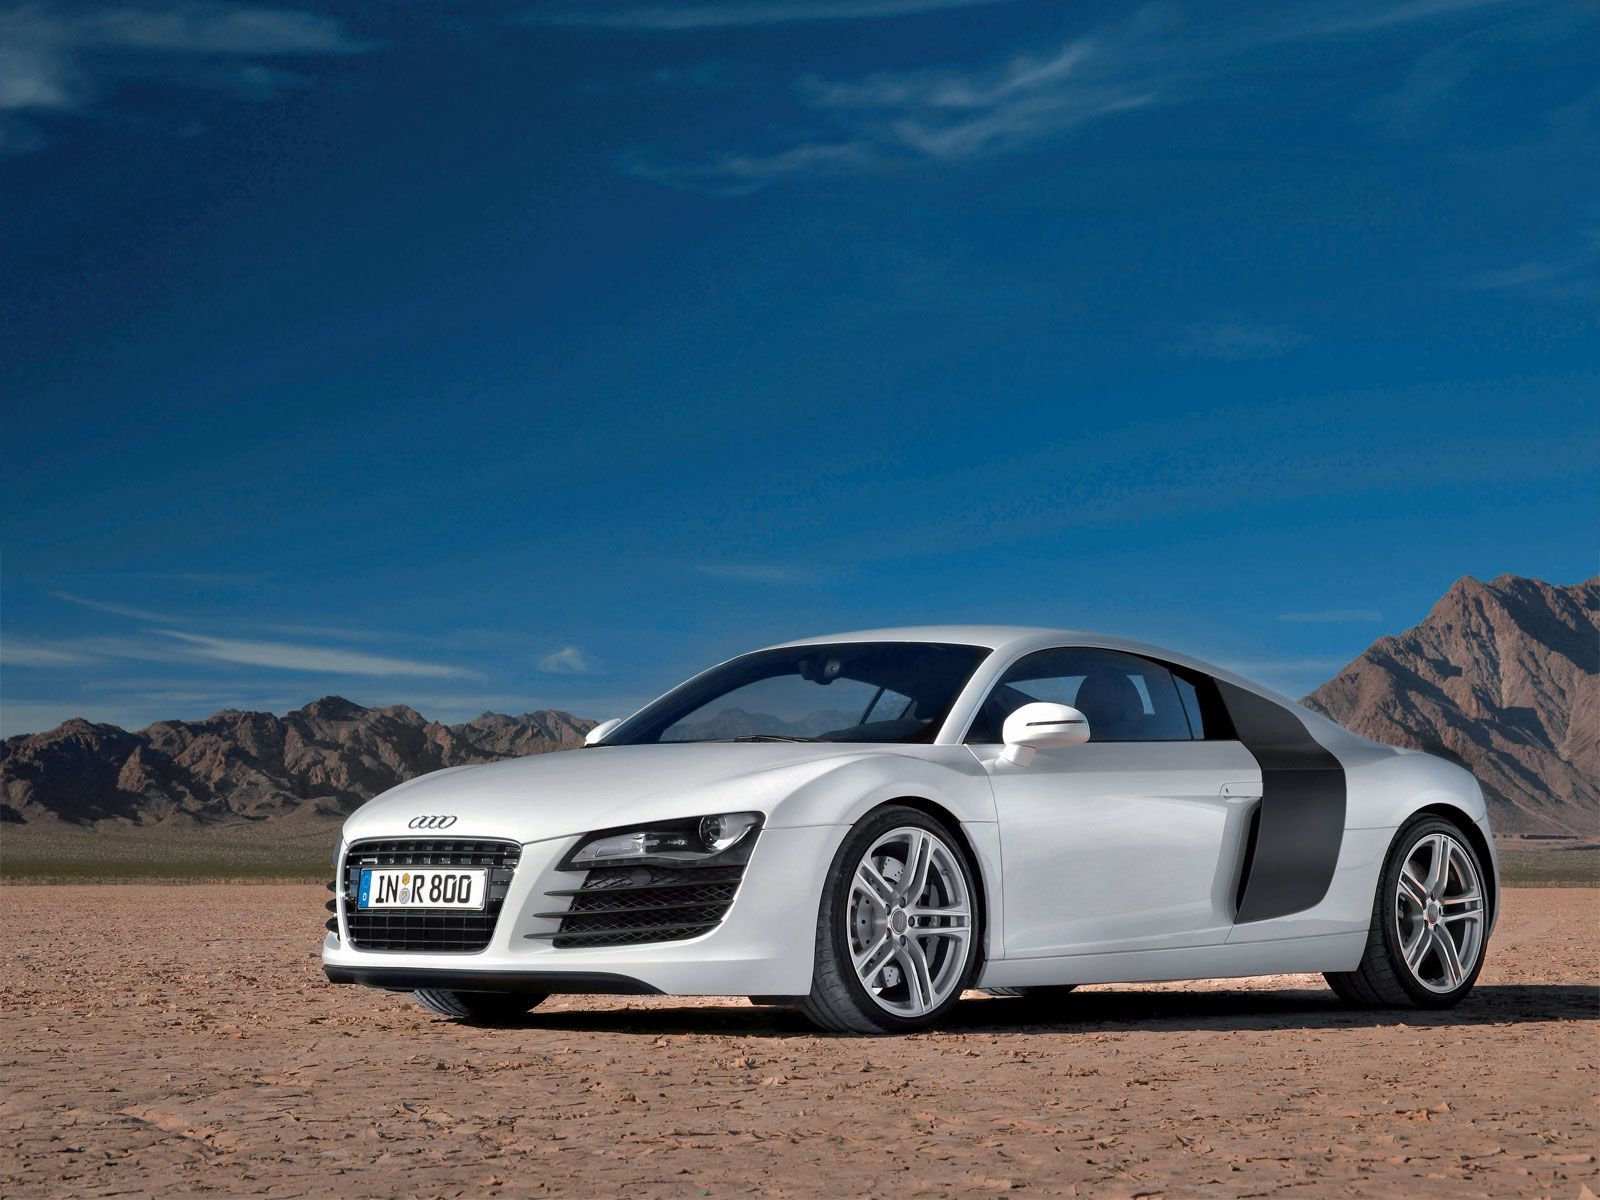 Audi R Wallpapers High Resolution Free Download  Free Wallpapers 1600x1200